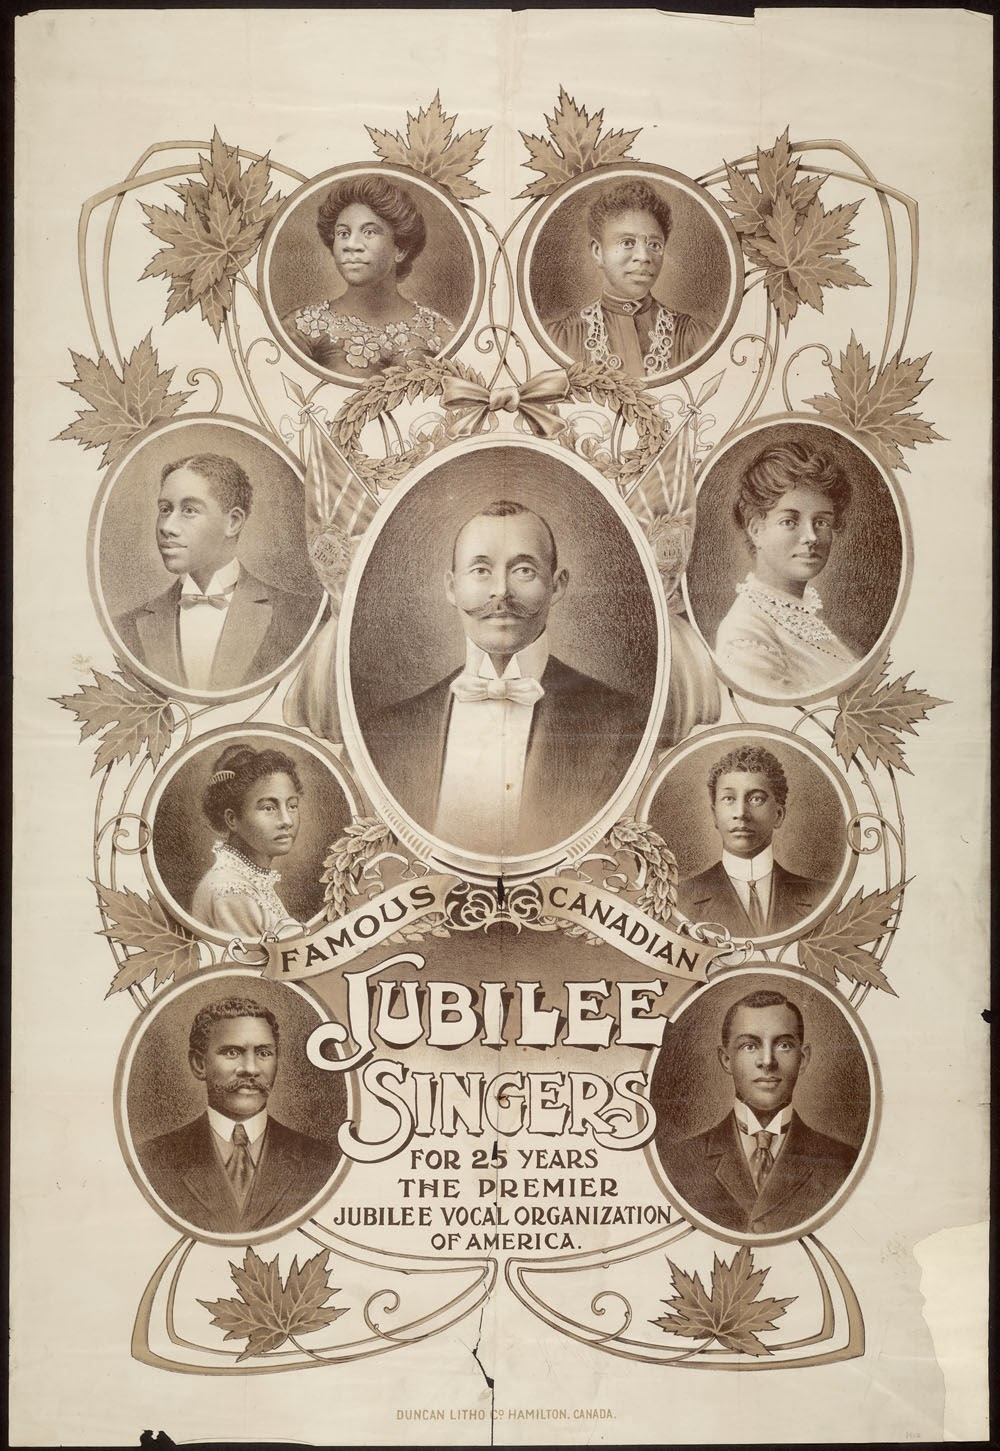 Black History Month: Who Were the Jubilee Singers